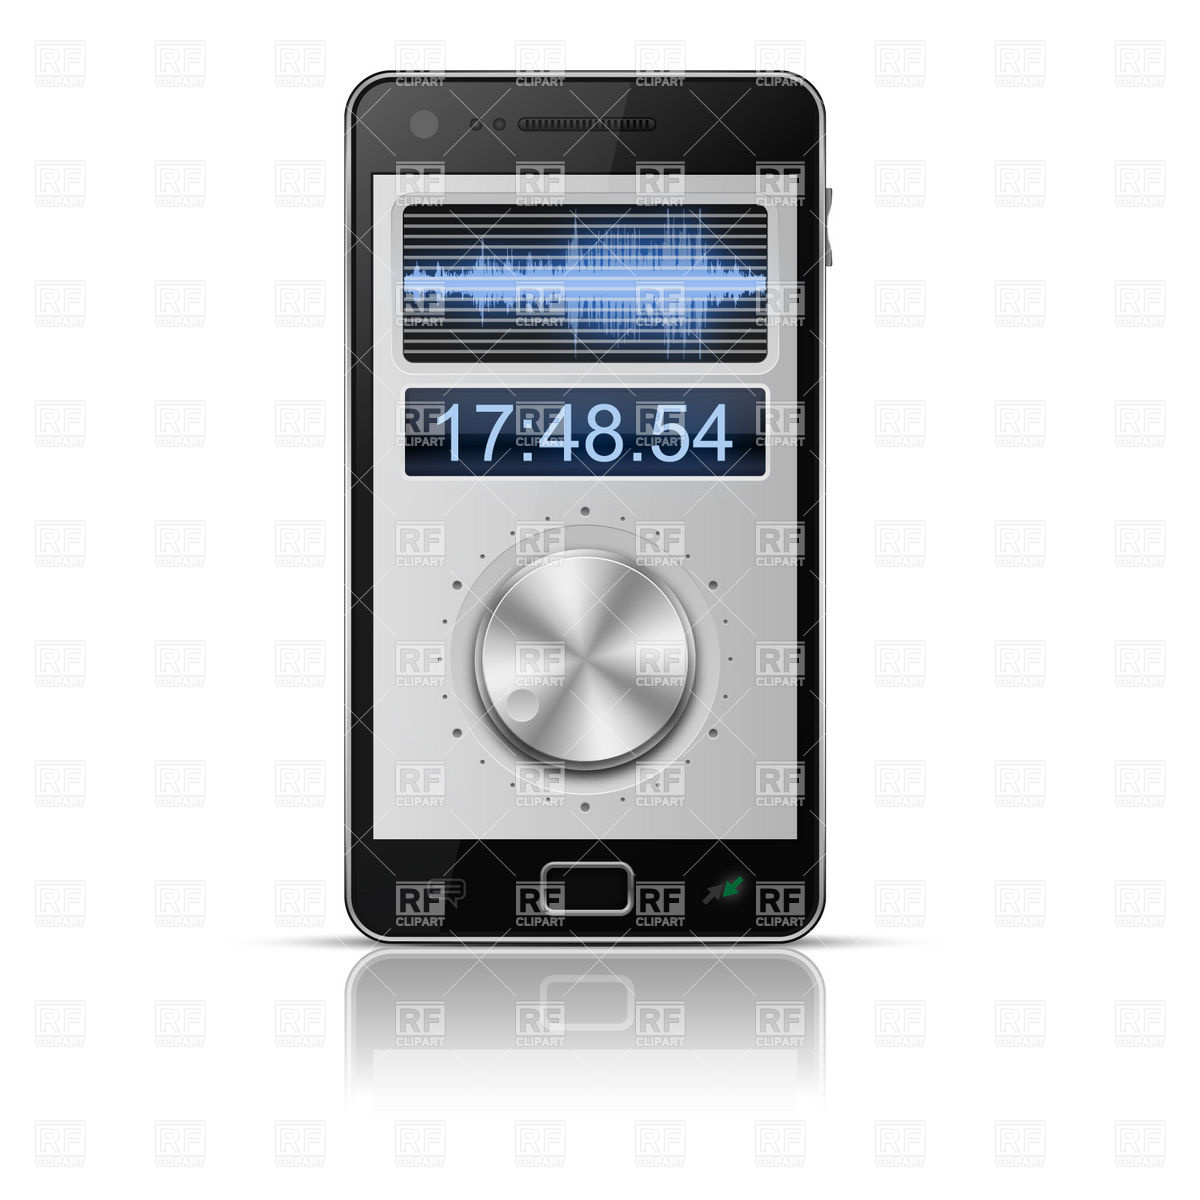 Audio Software Interface For Smartphone Download Royalty Free Vector